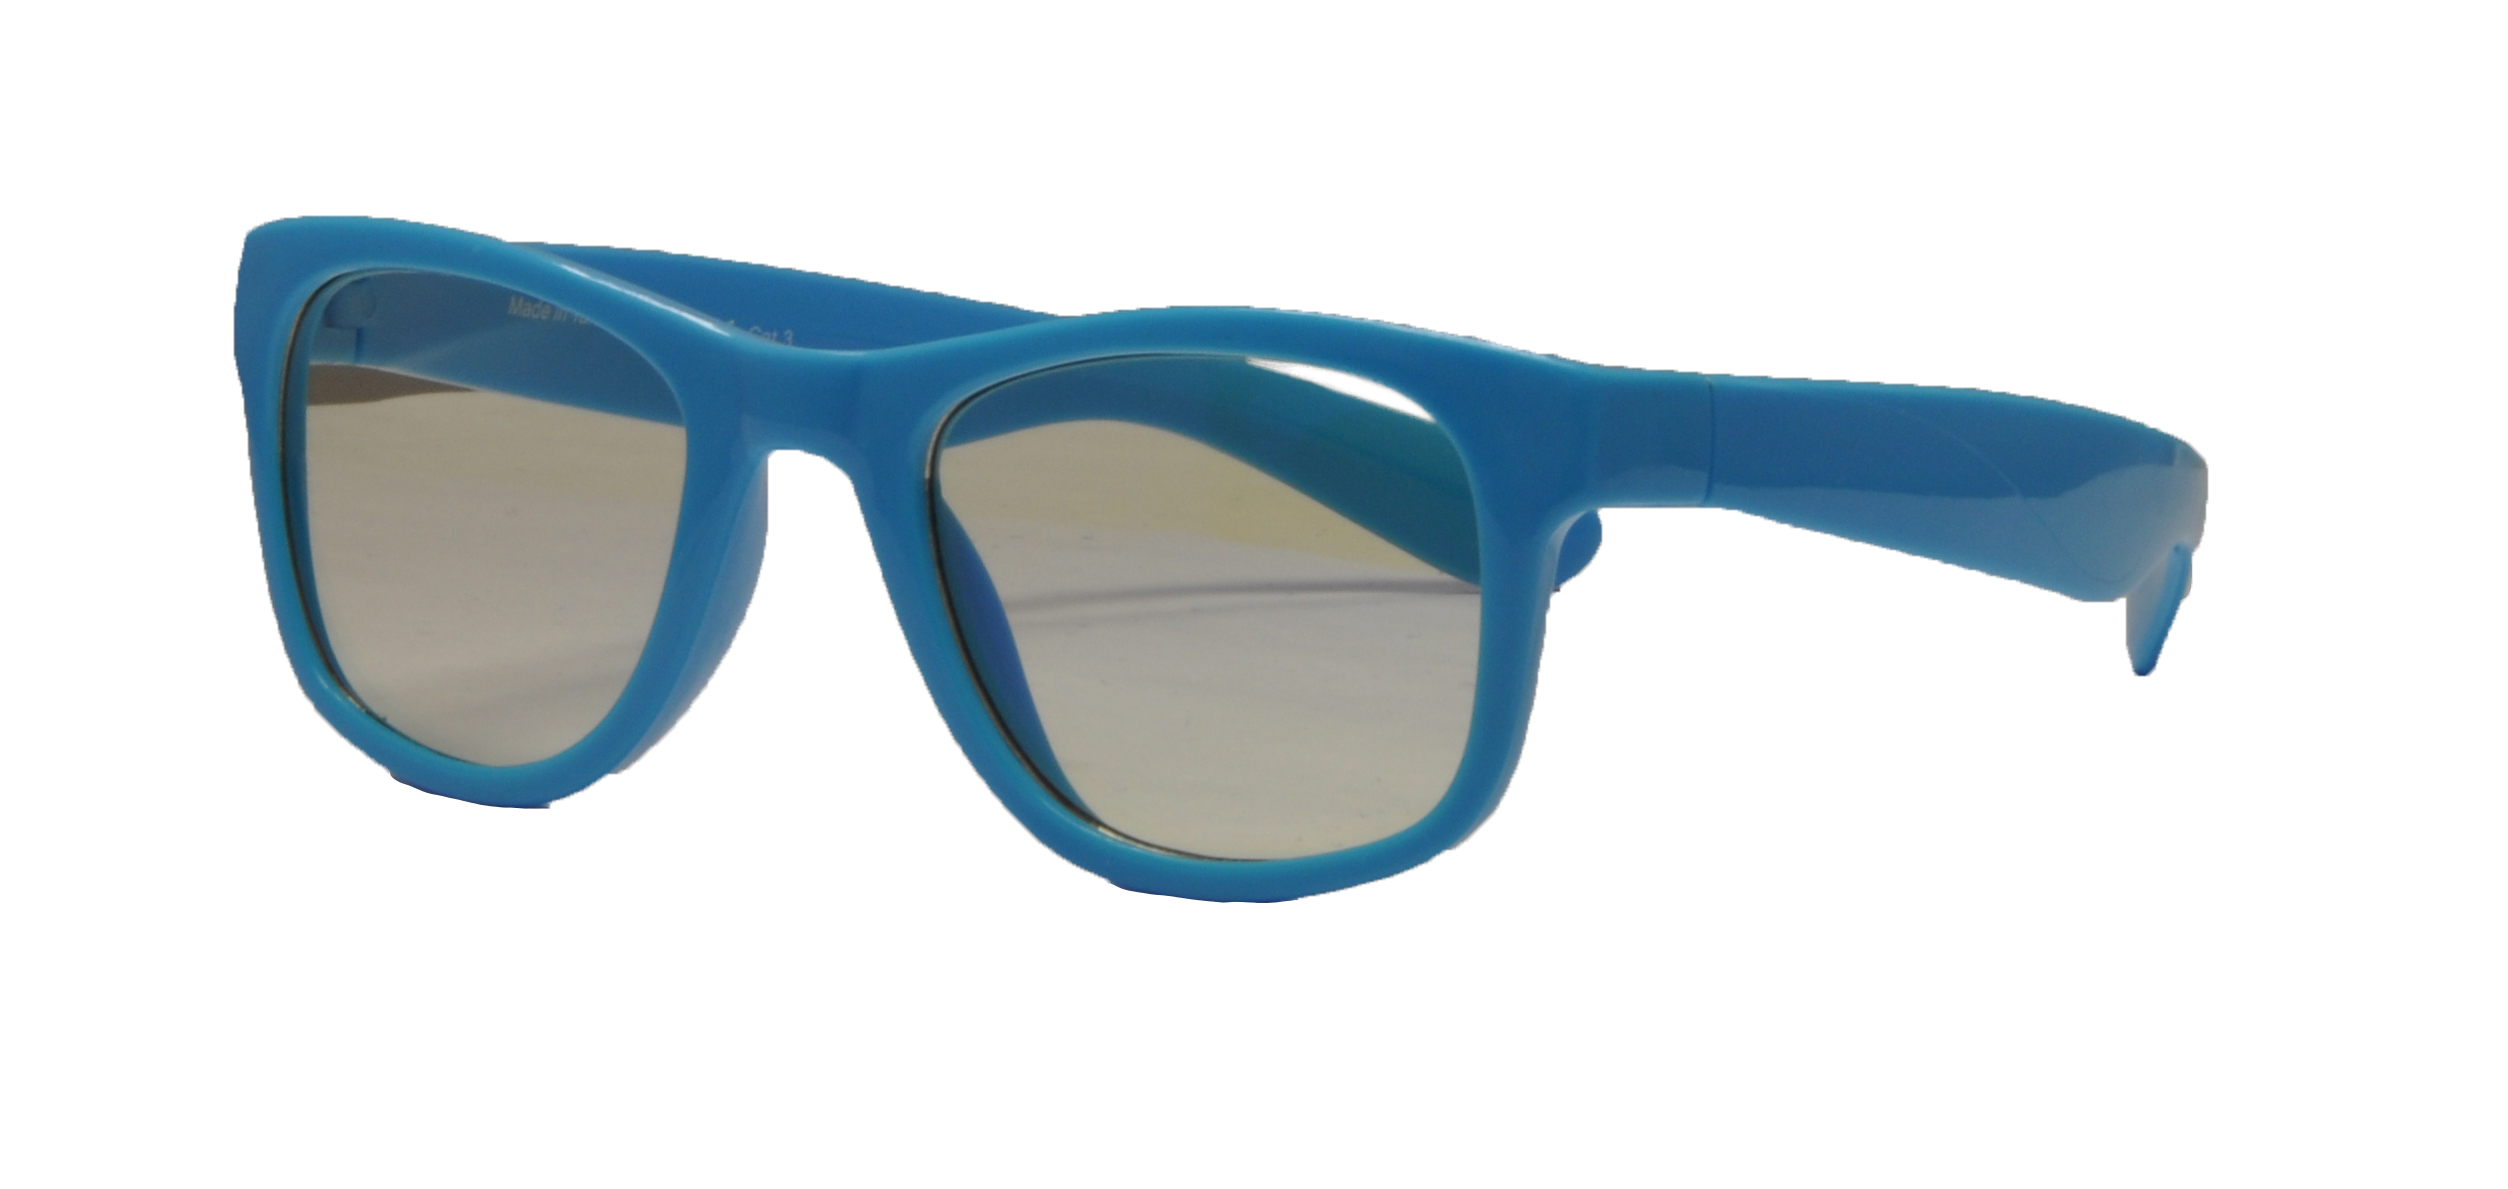 SCREEN SHADES NEON BLUE SIZE 2+